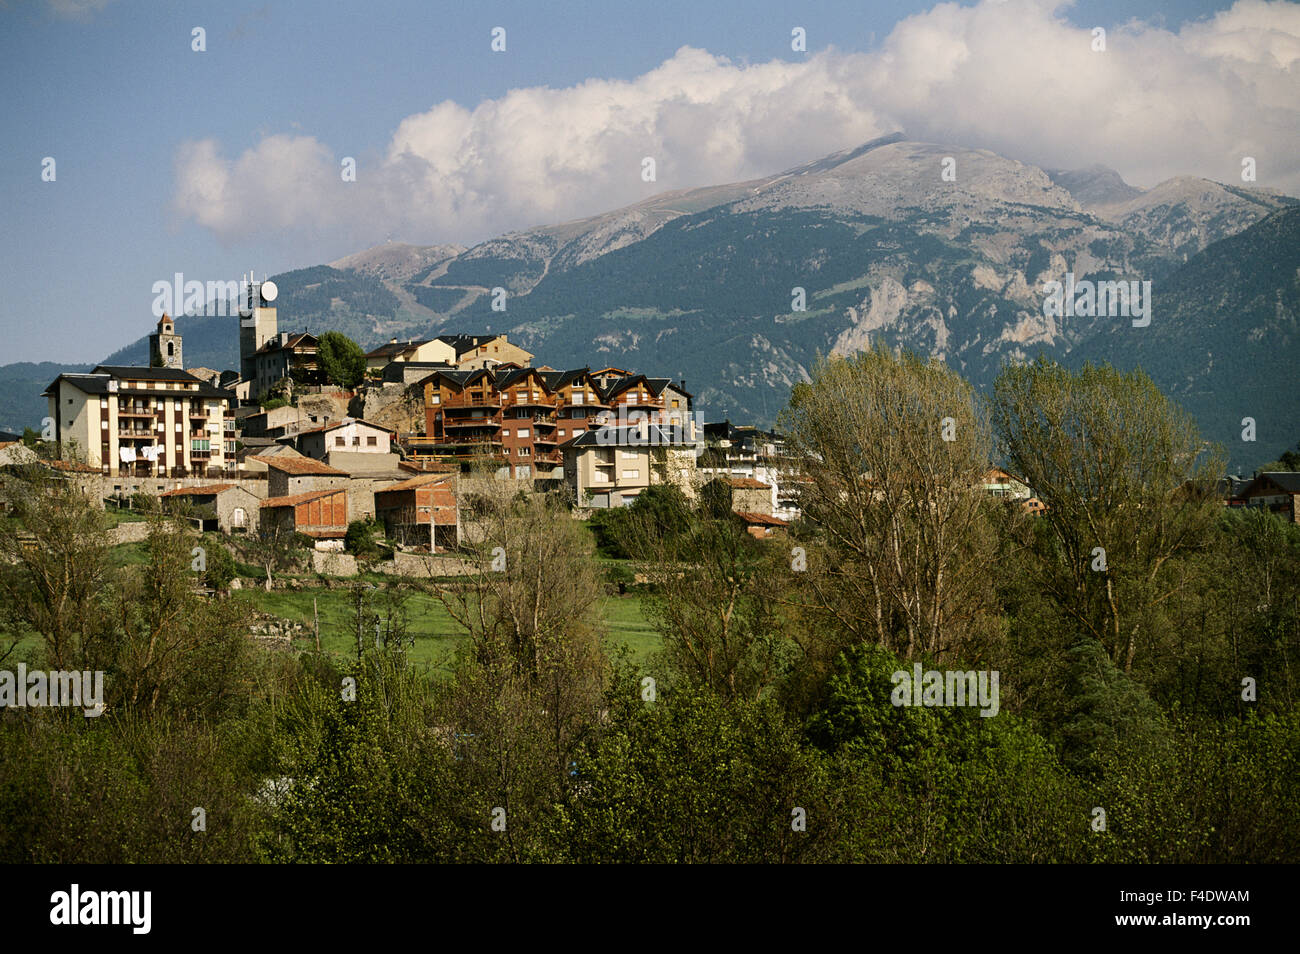 Spain, Catalonia, Bellver de Cerdanya. Village. (Large format sizes available) - Stock Image